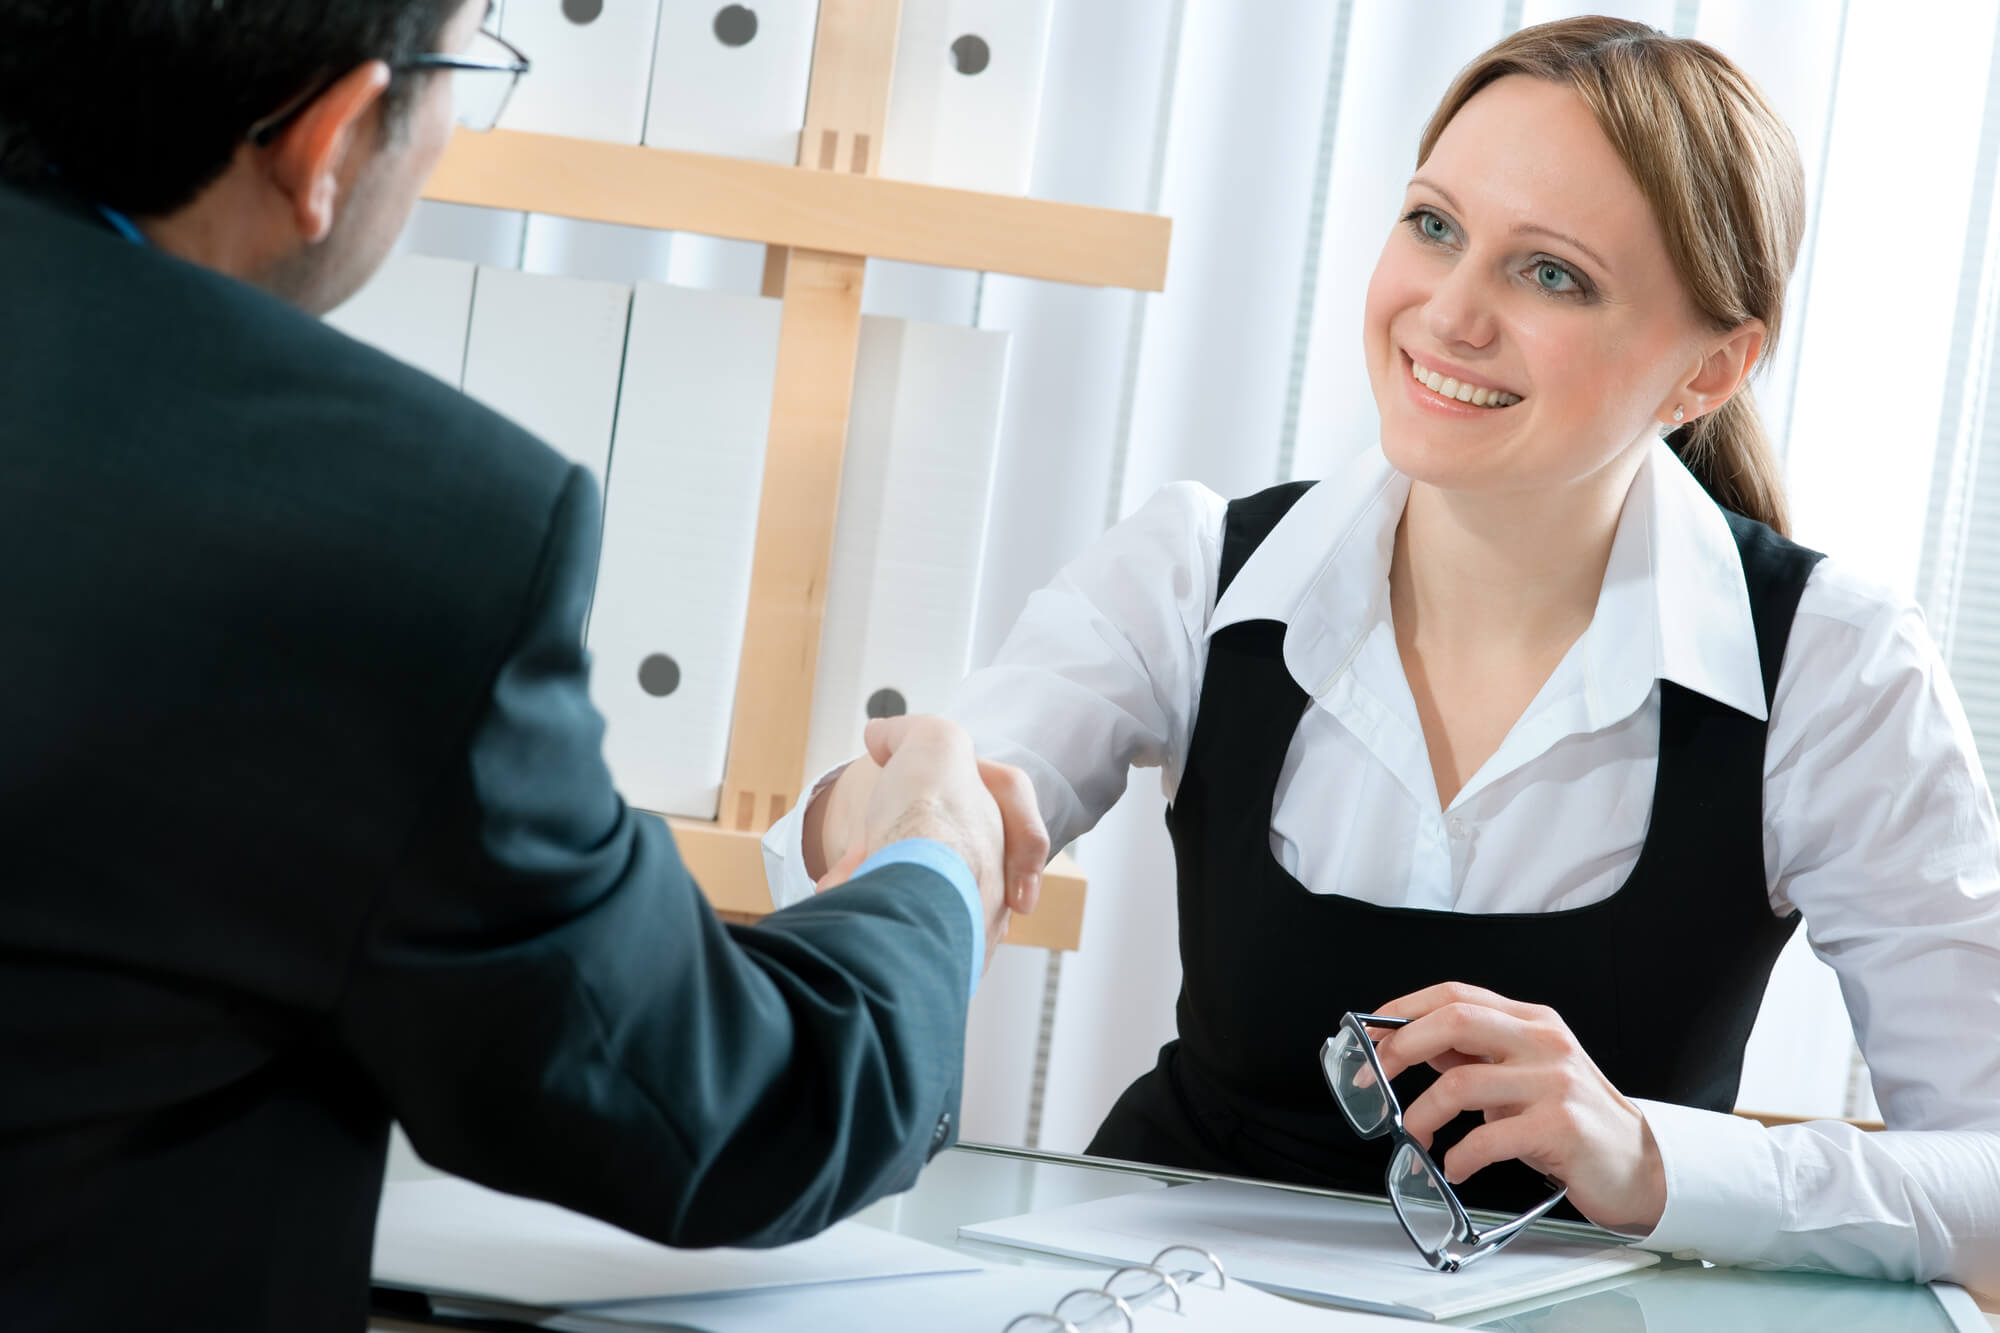 businesswoman shaking the hand of an applicant orthodontics positions hiring